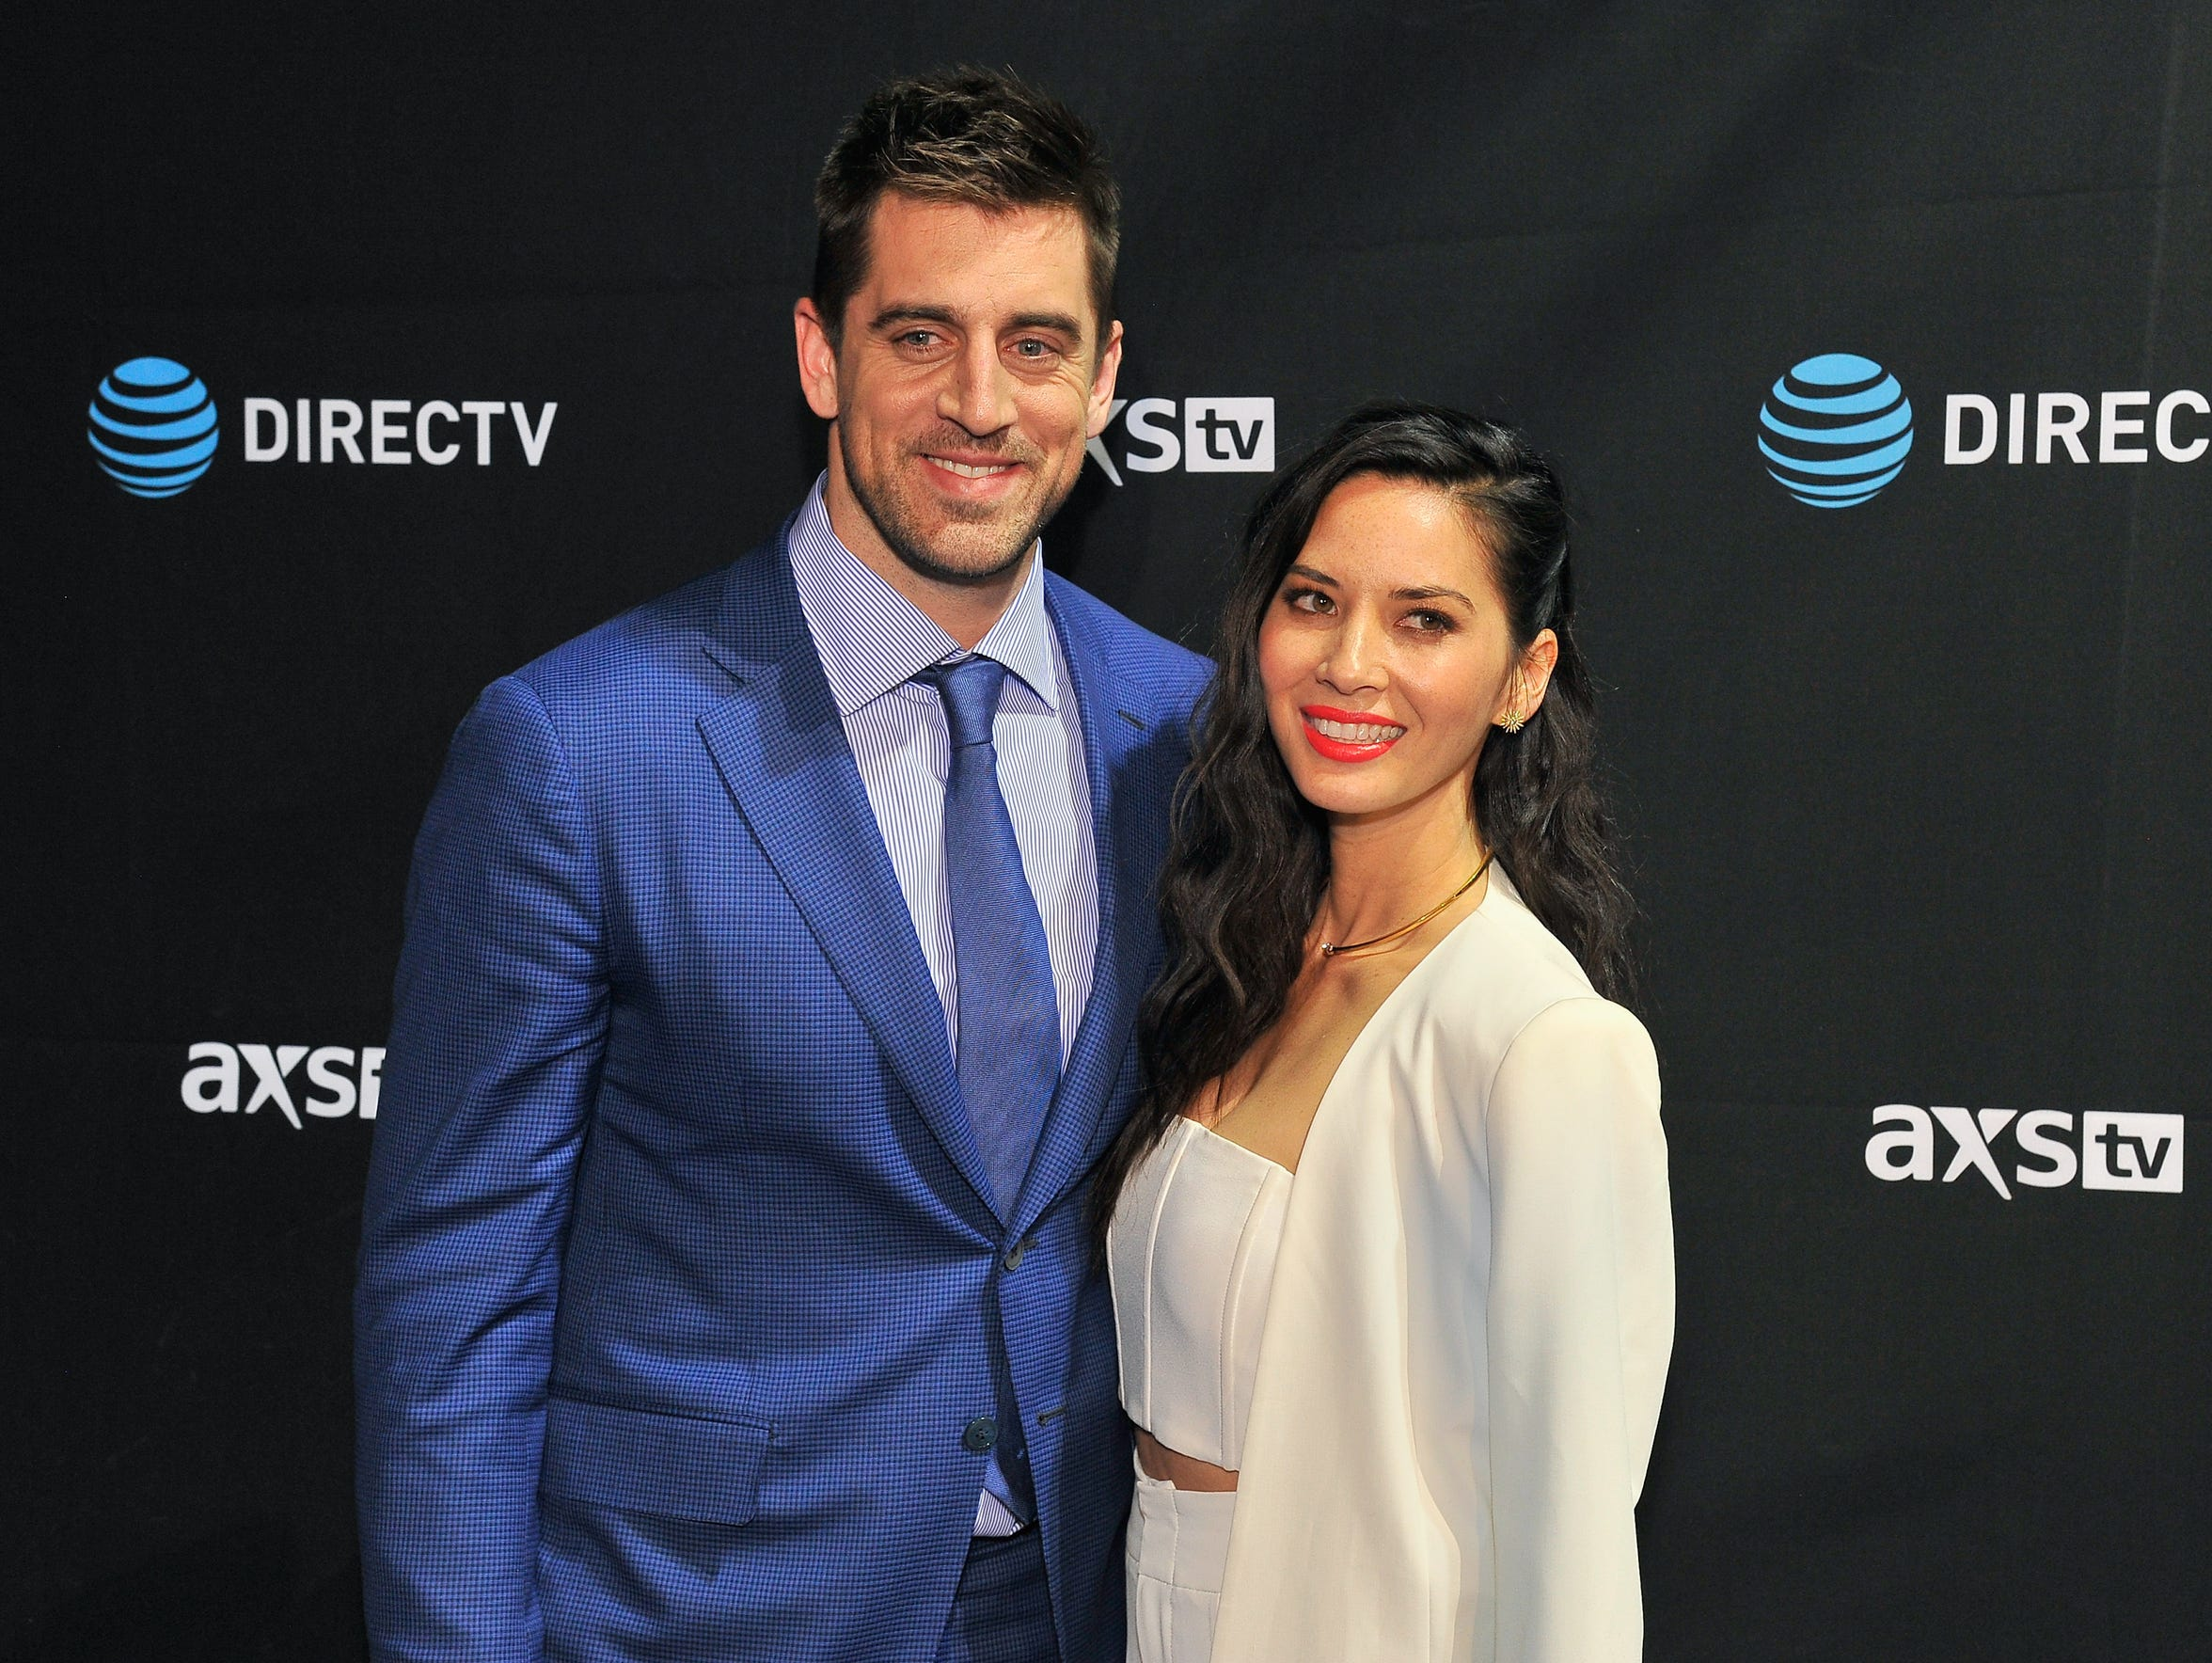 Aaron Rodgers and Olivia Munn are an item no more.